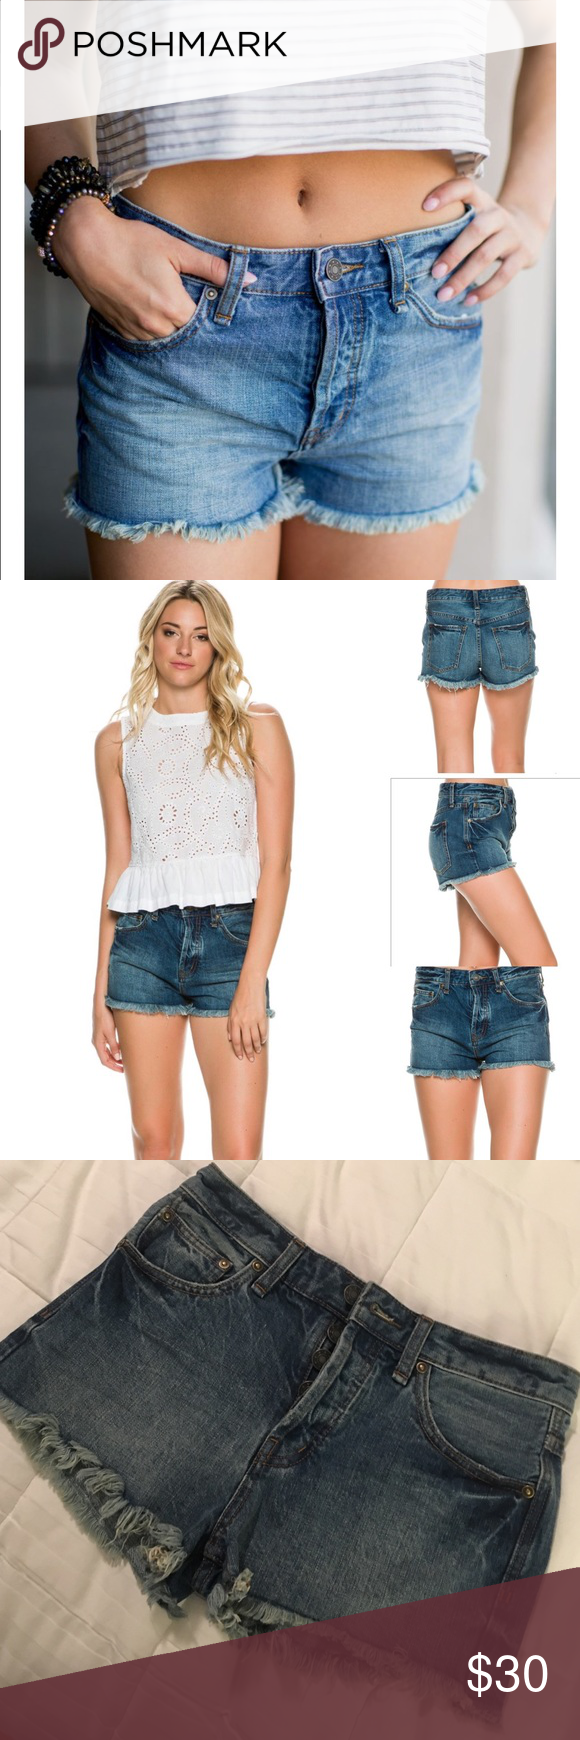 "Free people denim short * NEW without tags (never worn) * 11"" long (2"" inseam)  * Waist measures 14.5"" across  * Size 25 * Color:medium blue wash  * 100% cotton  * First photo for style inspiration and fit  * NO TRADES/No offsite transactions* Bundle 🛍for discount and save 💰on shipping 📦 Free People Shorts Jean Shorts"